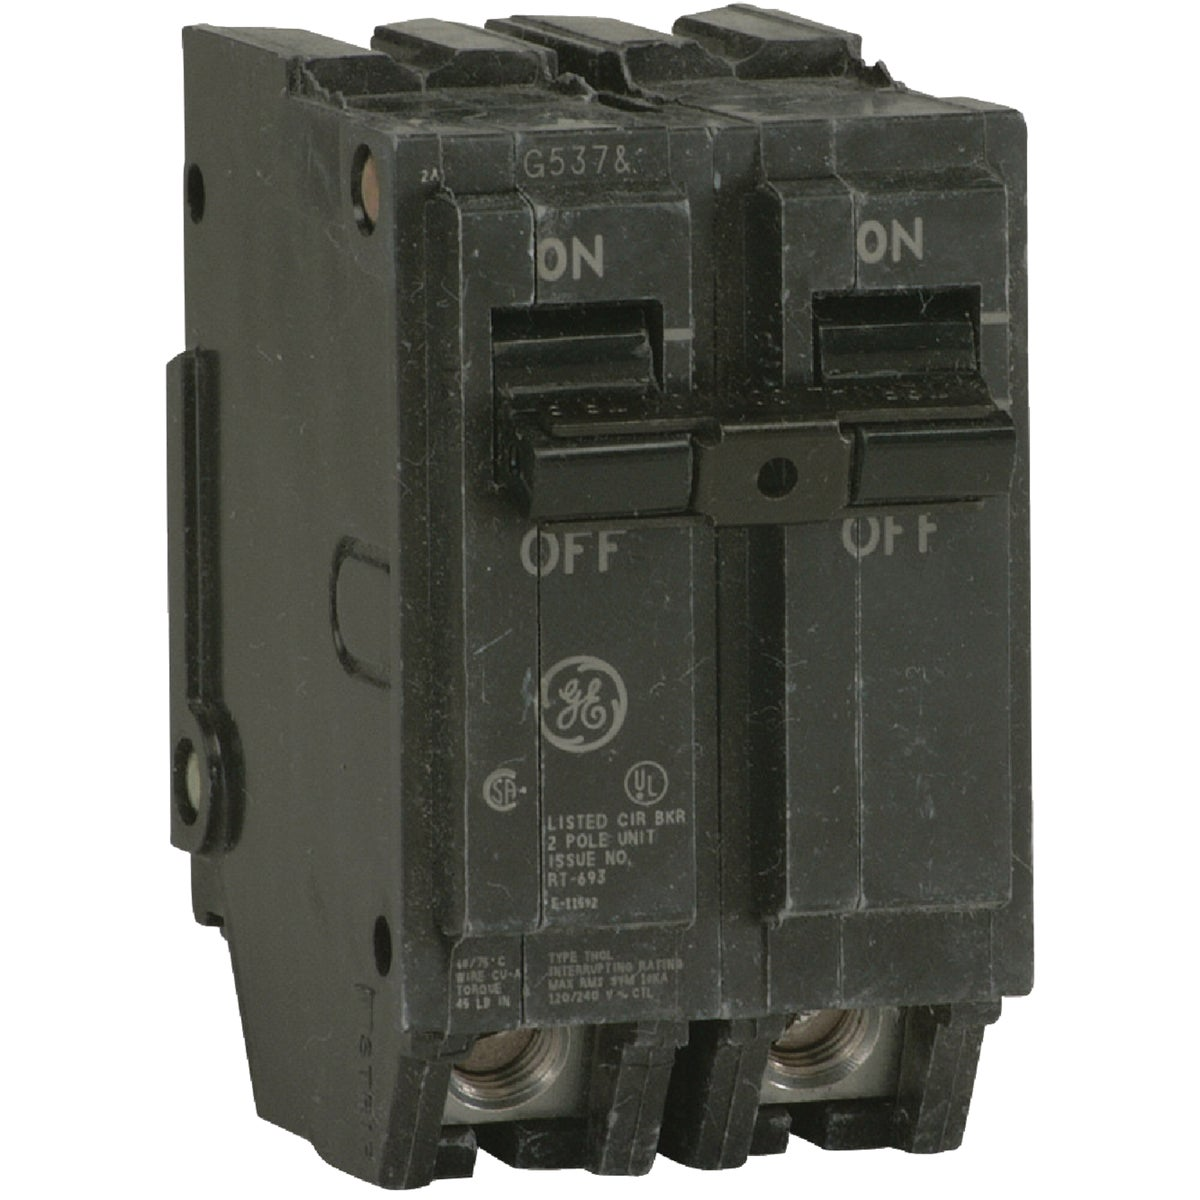 60A 2P CIRCUIT BREAKER - THQL2160 by G E Industrial